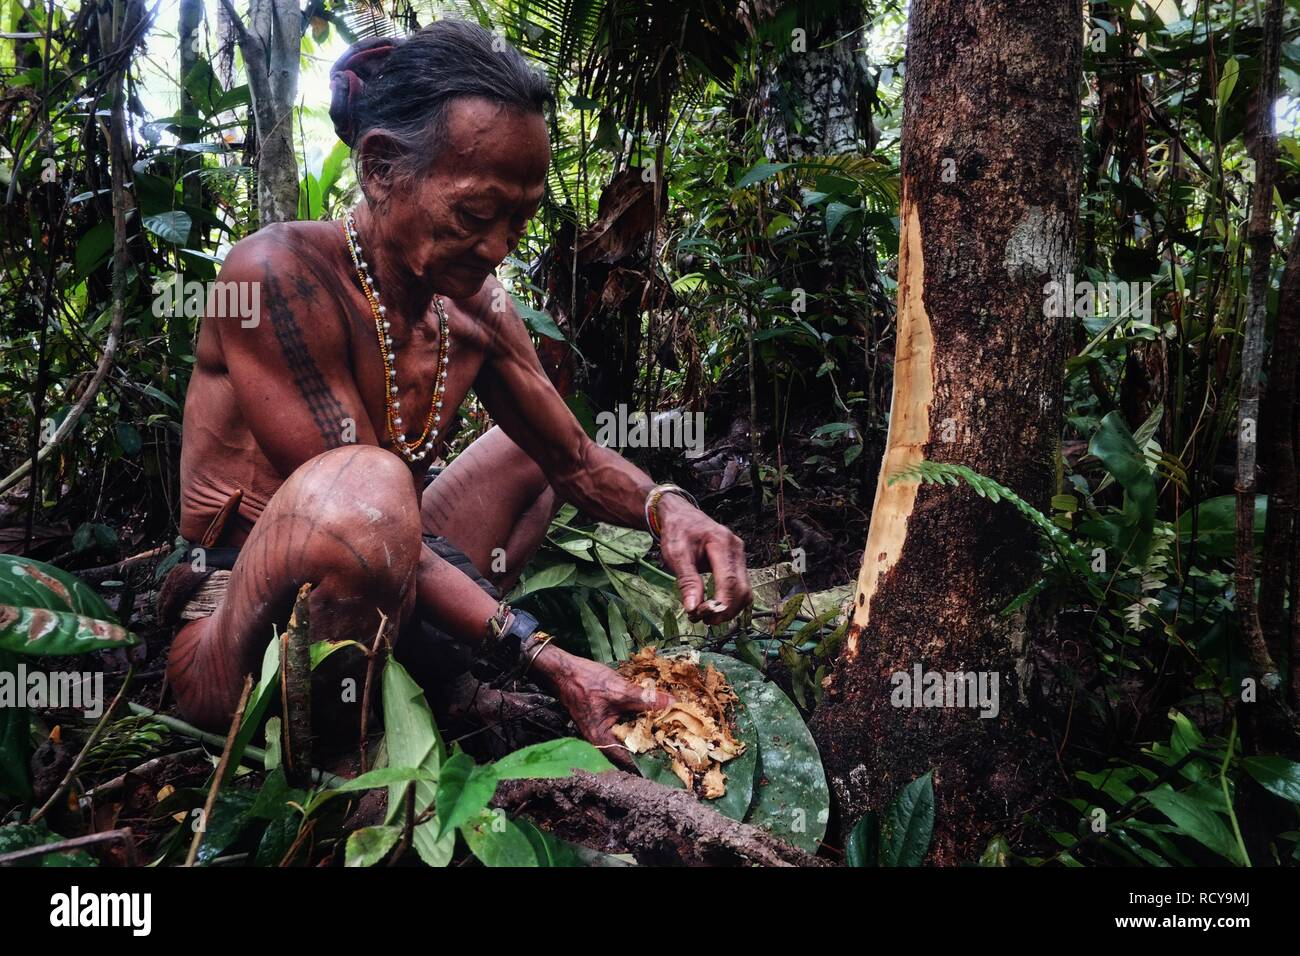 Muara Siberut, Mentawai Islands / Indonesia - Aug 15 2017: Tribal elder Toikot collecting materials fruits and plants in the jungle - Stock Image